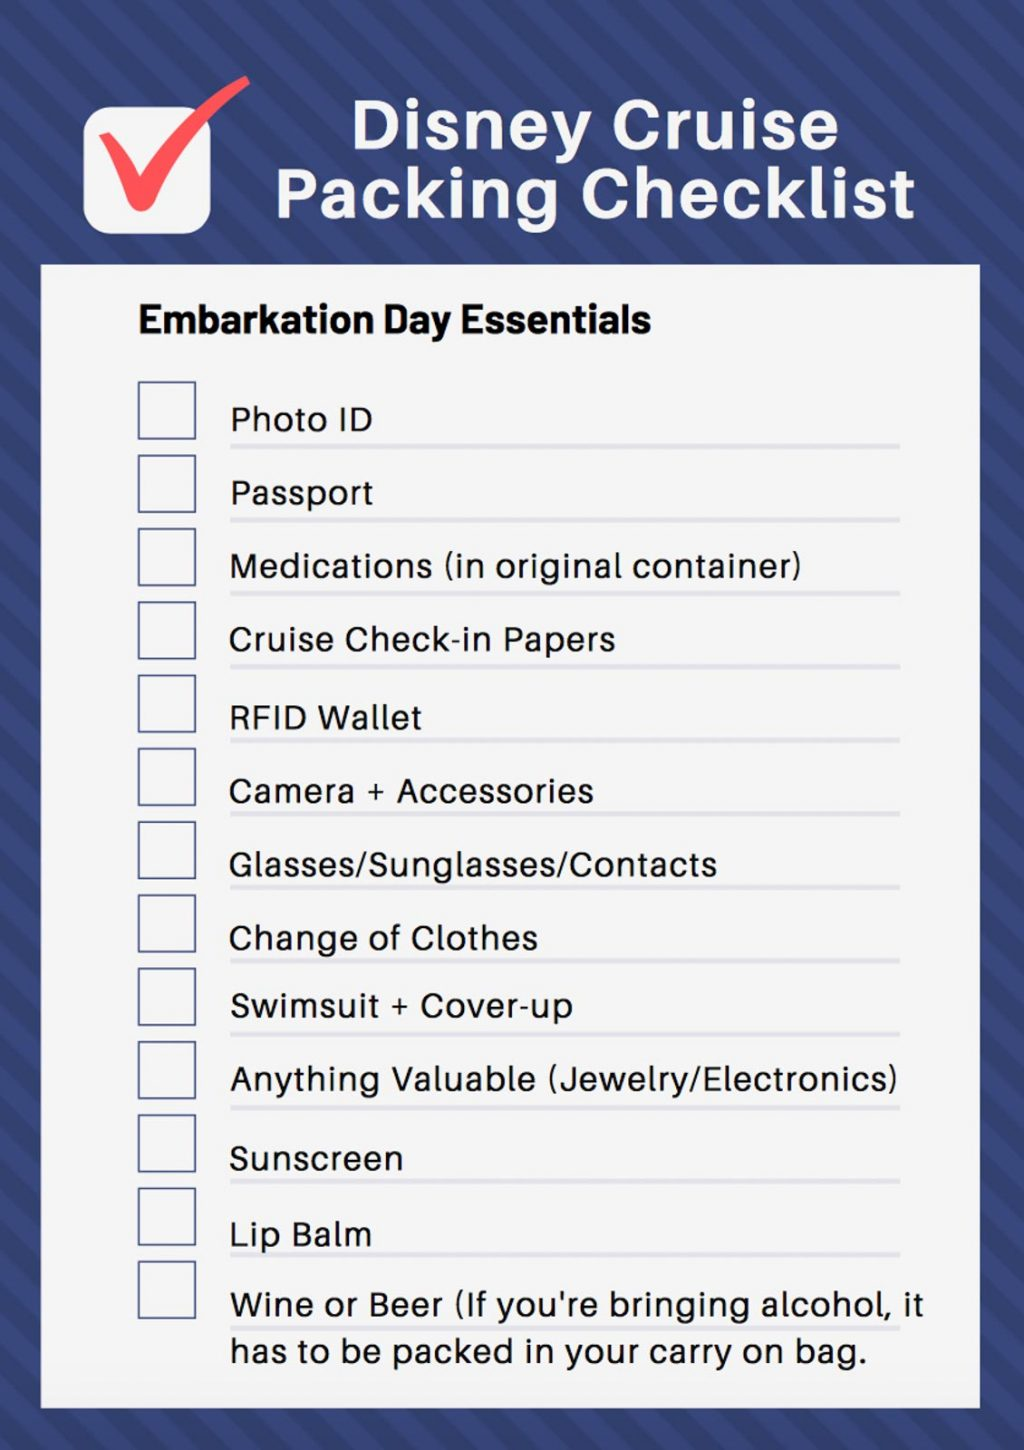 A free printable Disney cruise packing list.